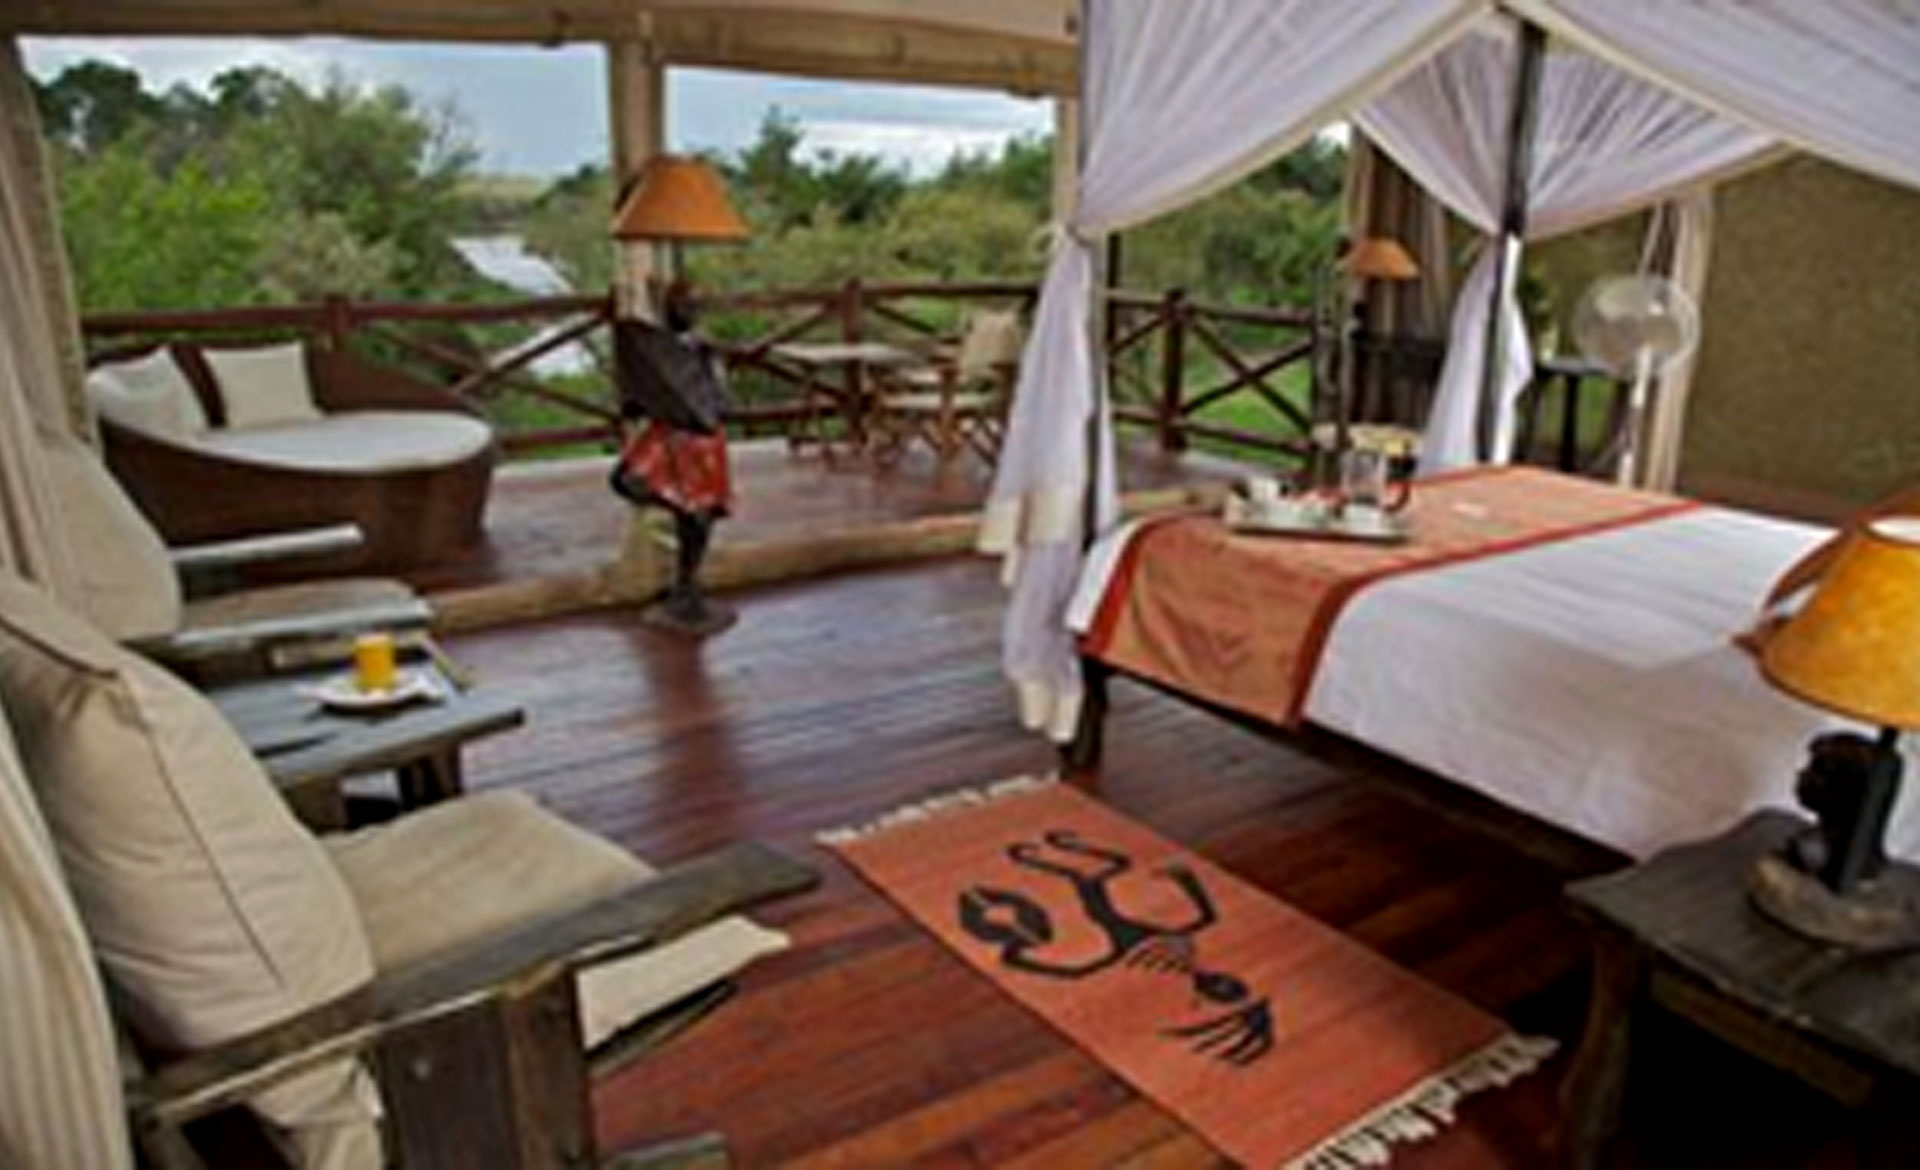 Diani_travel_center_diani_tours_and_safaris_2_Days_masai_mara_by_air_diani_masai_mara-air_ashnil_mara